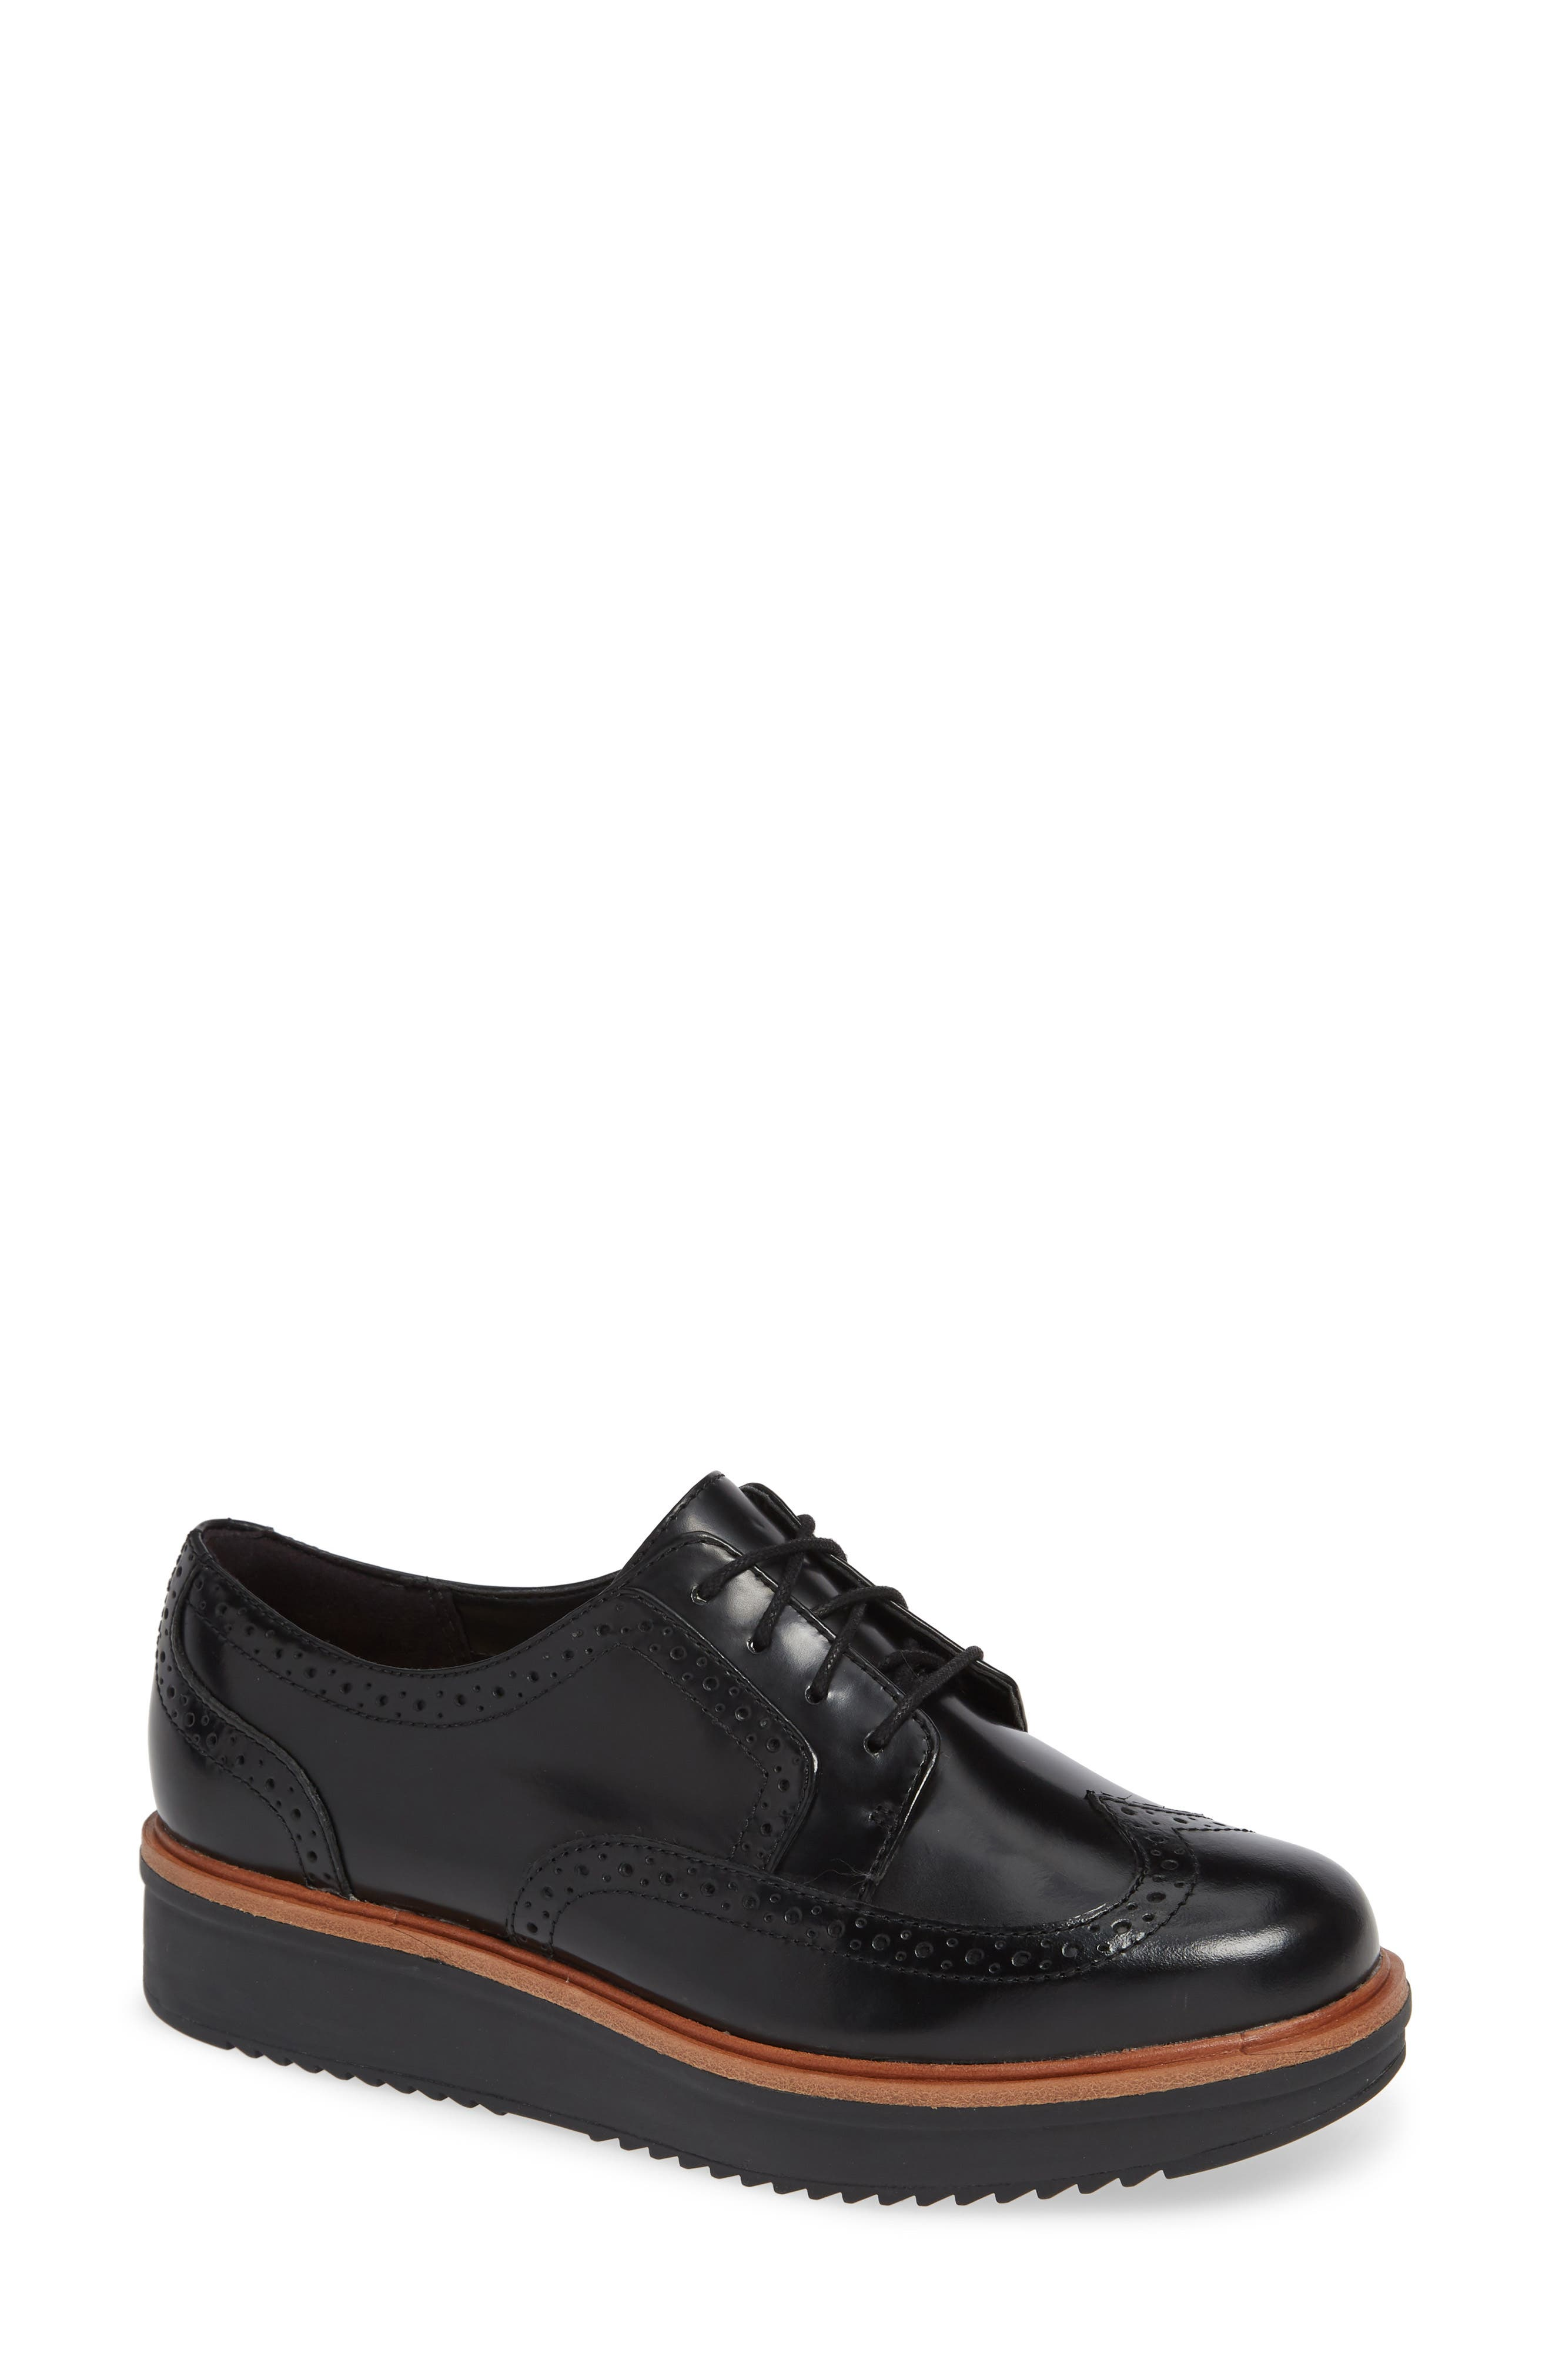 Teadale Maira Wingtip Derby, Main, color, BLACK LEATHER